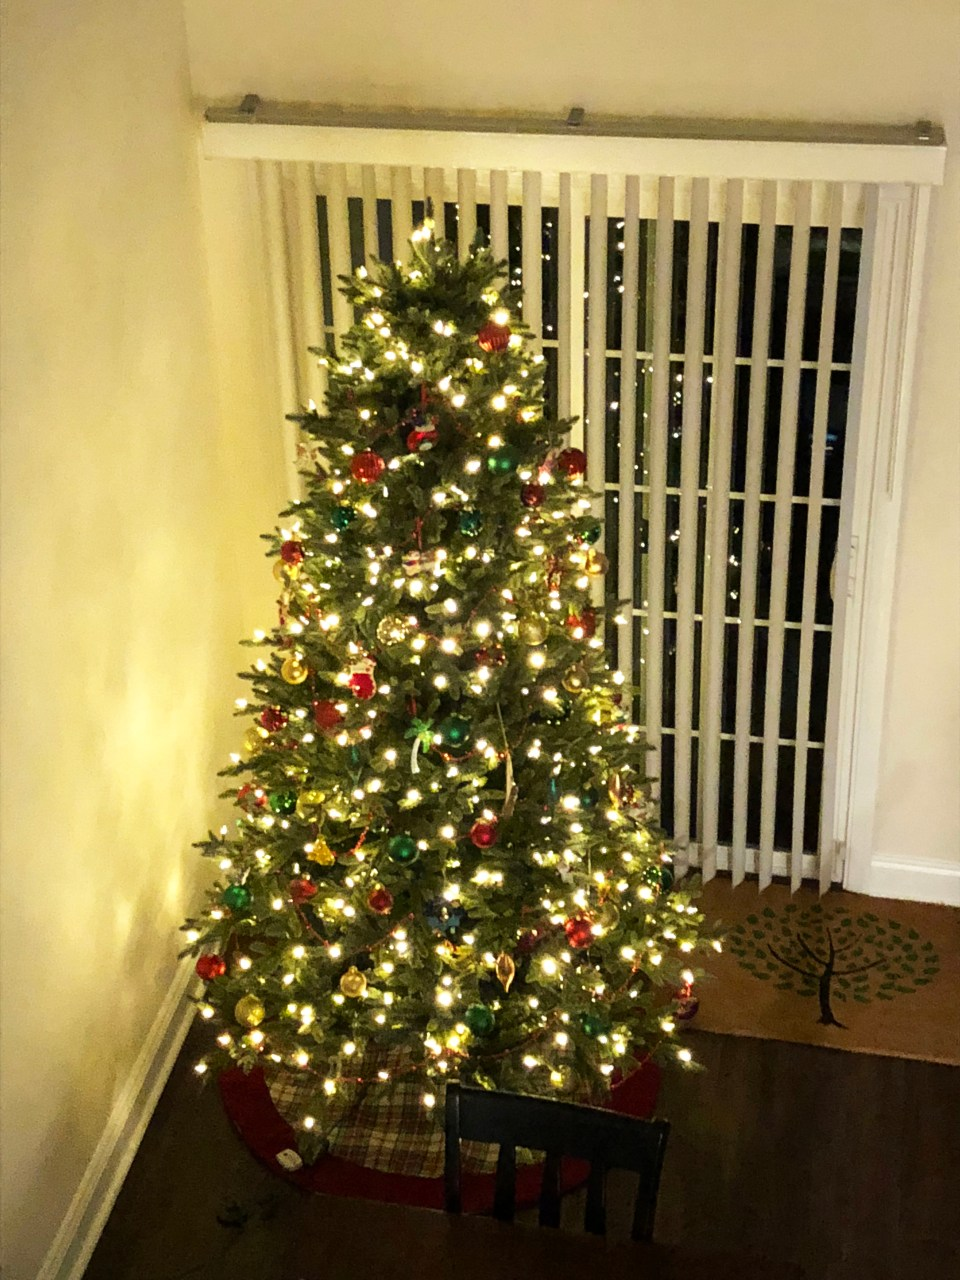 Christmas Tree - Nighttime 4